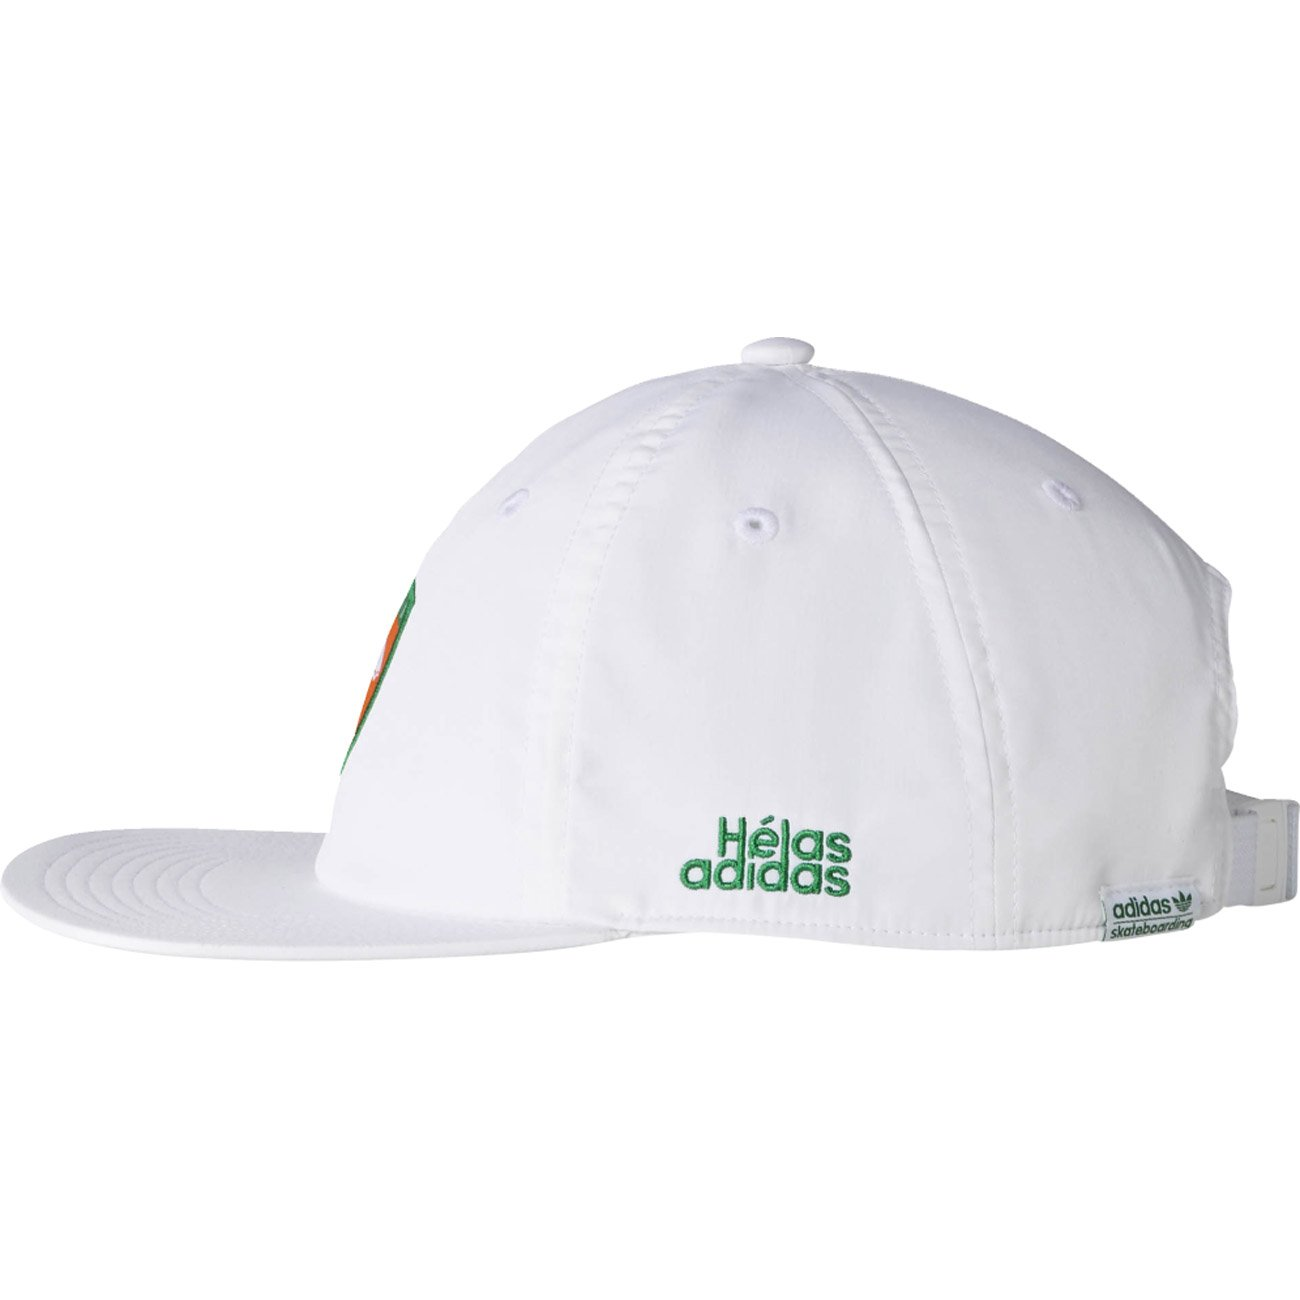 b5ff0e3f610 adidas Originals Mens Helas 6 Panel Cap in White - OSFM  adidas   Amazon.co.uk  Clothing